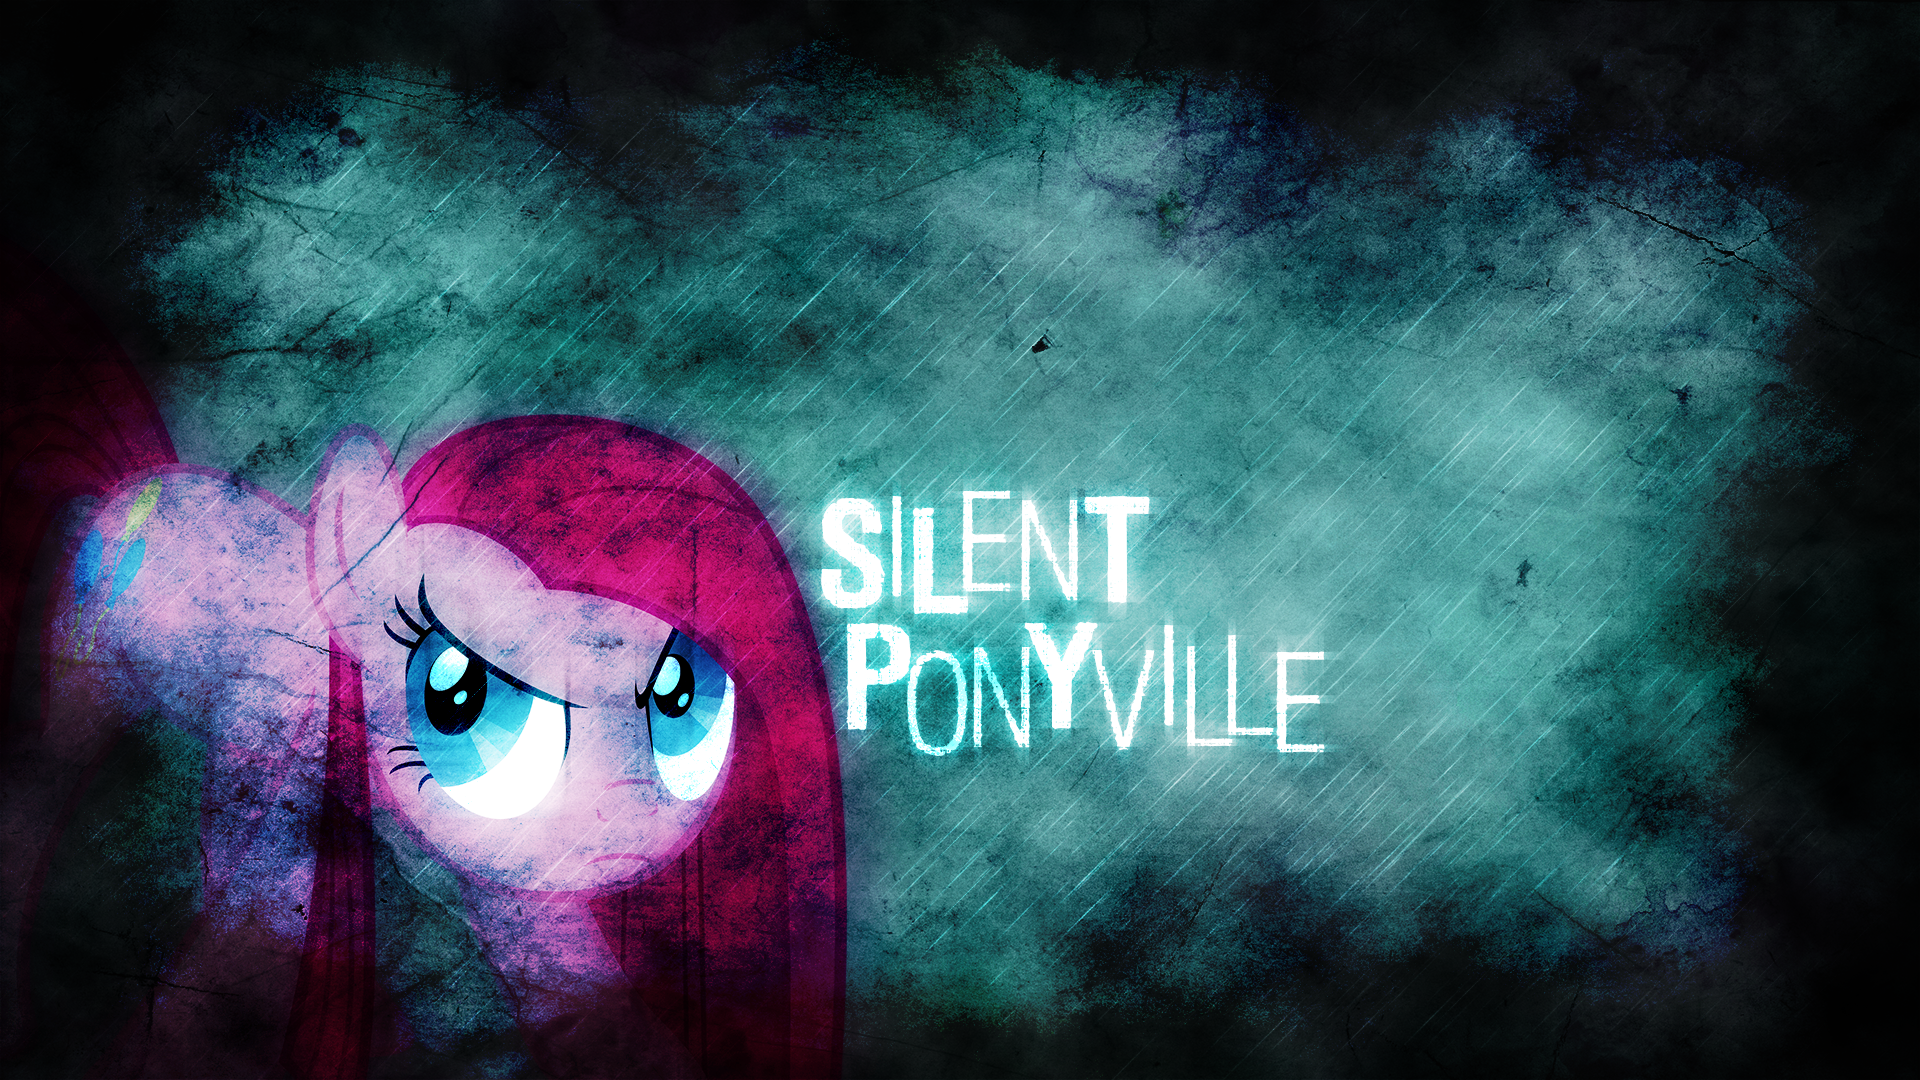 Silent Ponyville (Nightmare Night special) by Hi52utoday and Mac3030